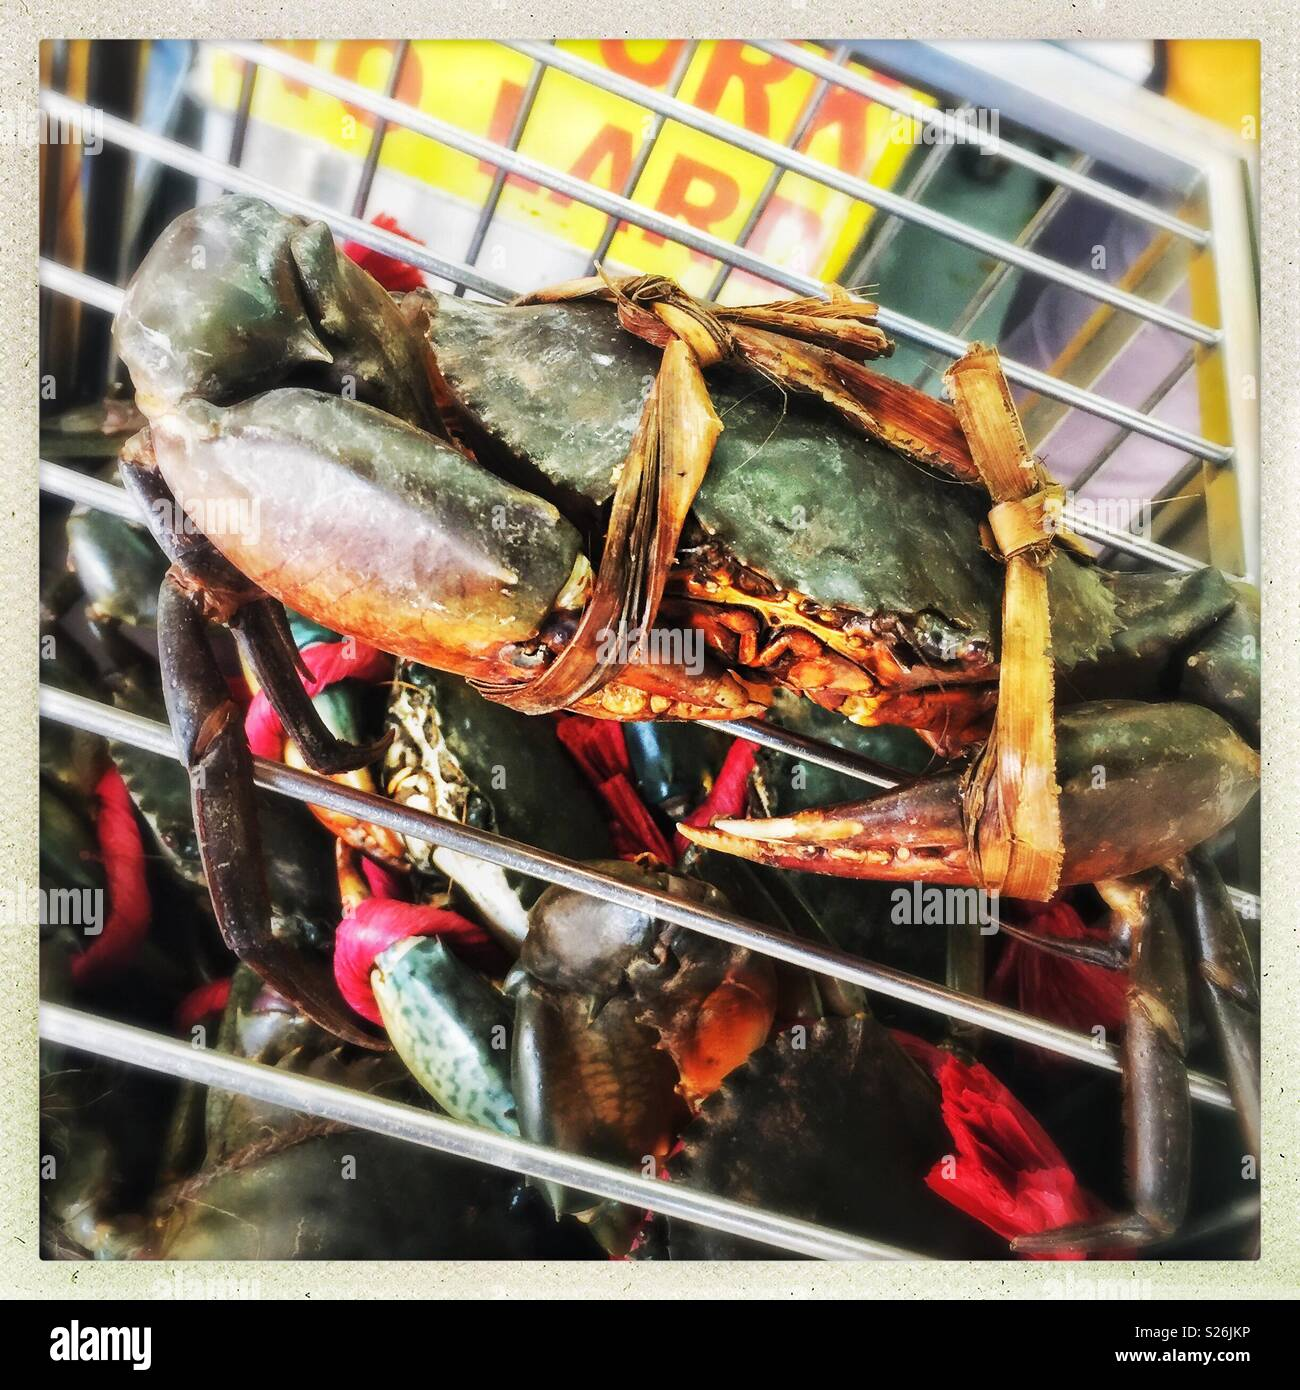 Live mud crab selected for cooking at East Coast Lagoon Food Village, a hawker food market in Singapore - Stock Image